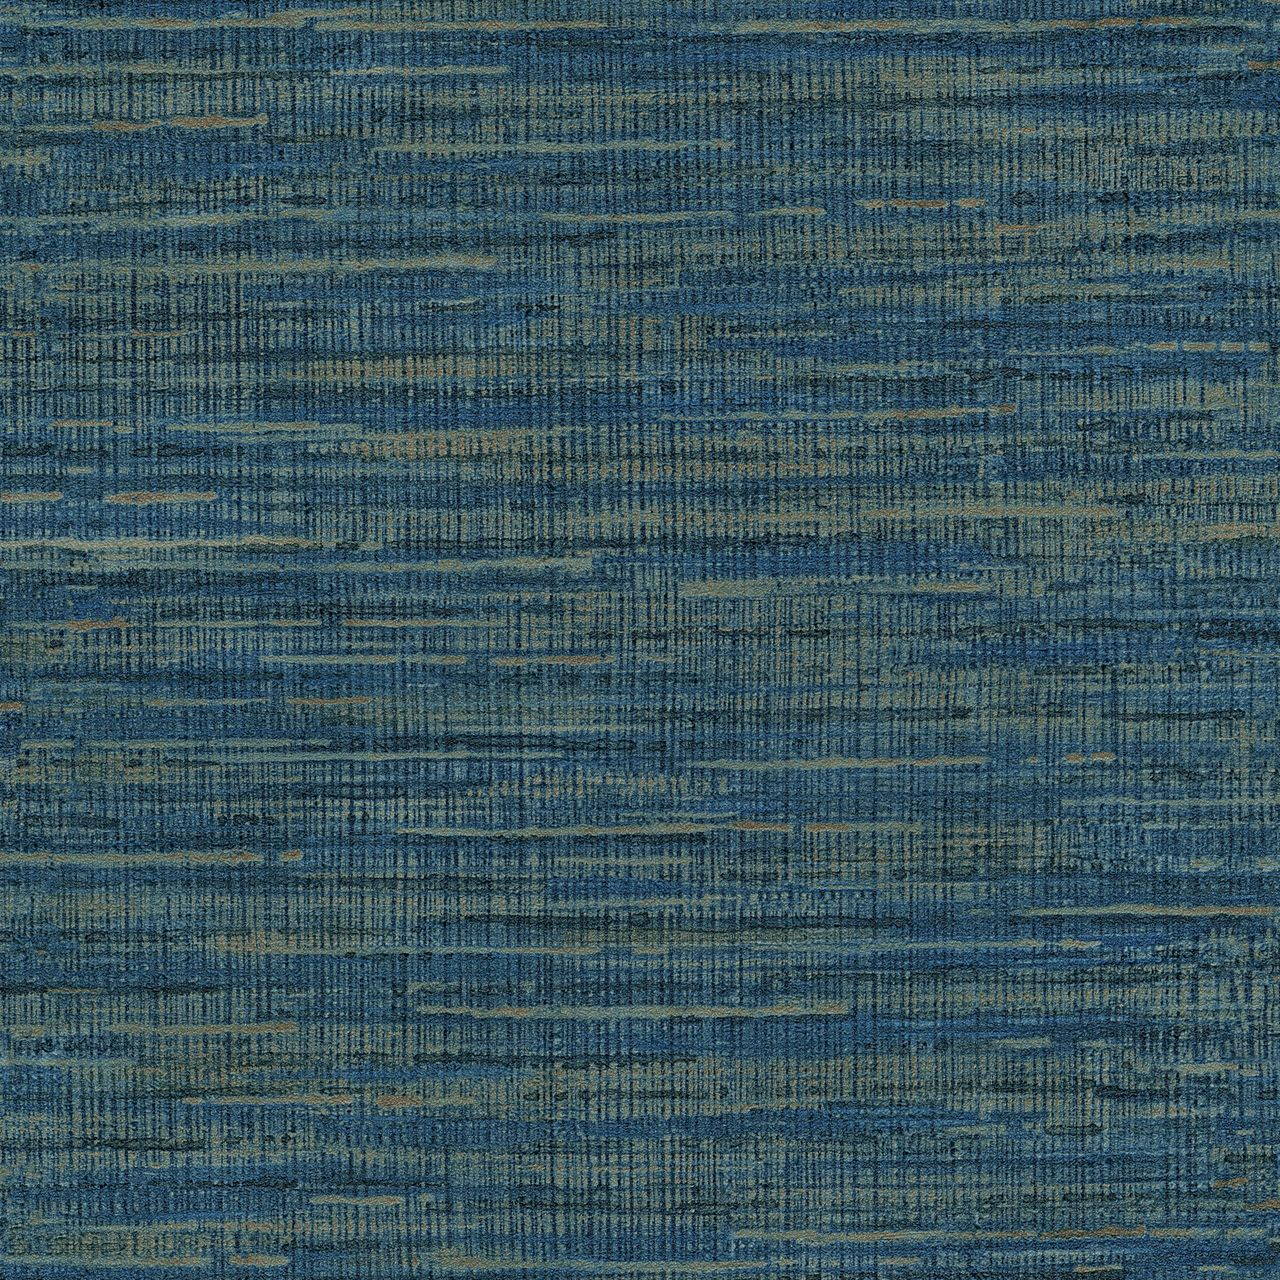 Teal Grasscloth Wallpaper Saffiano Luxury Papers 339884